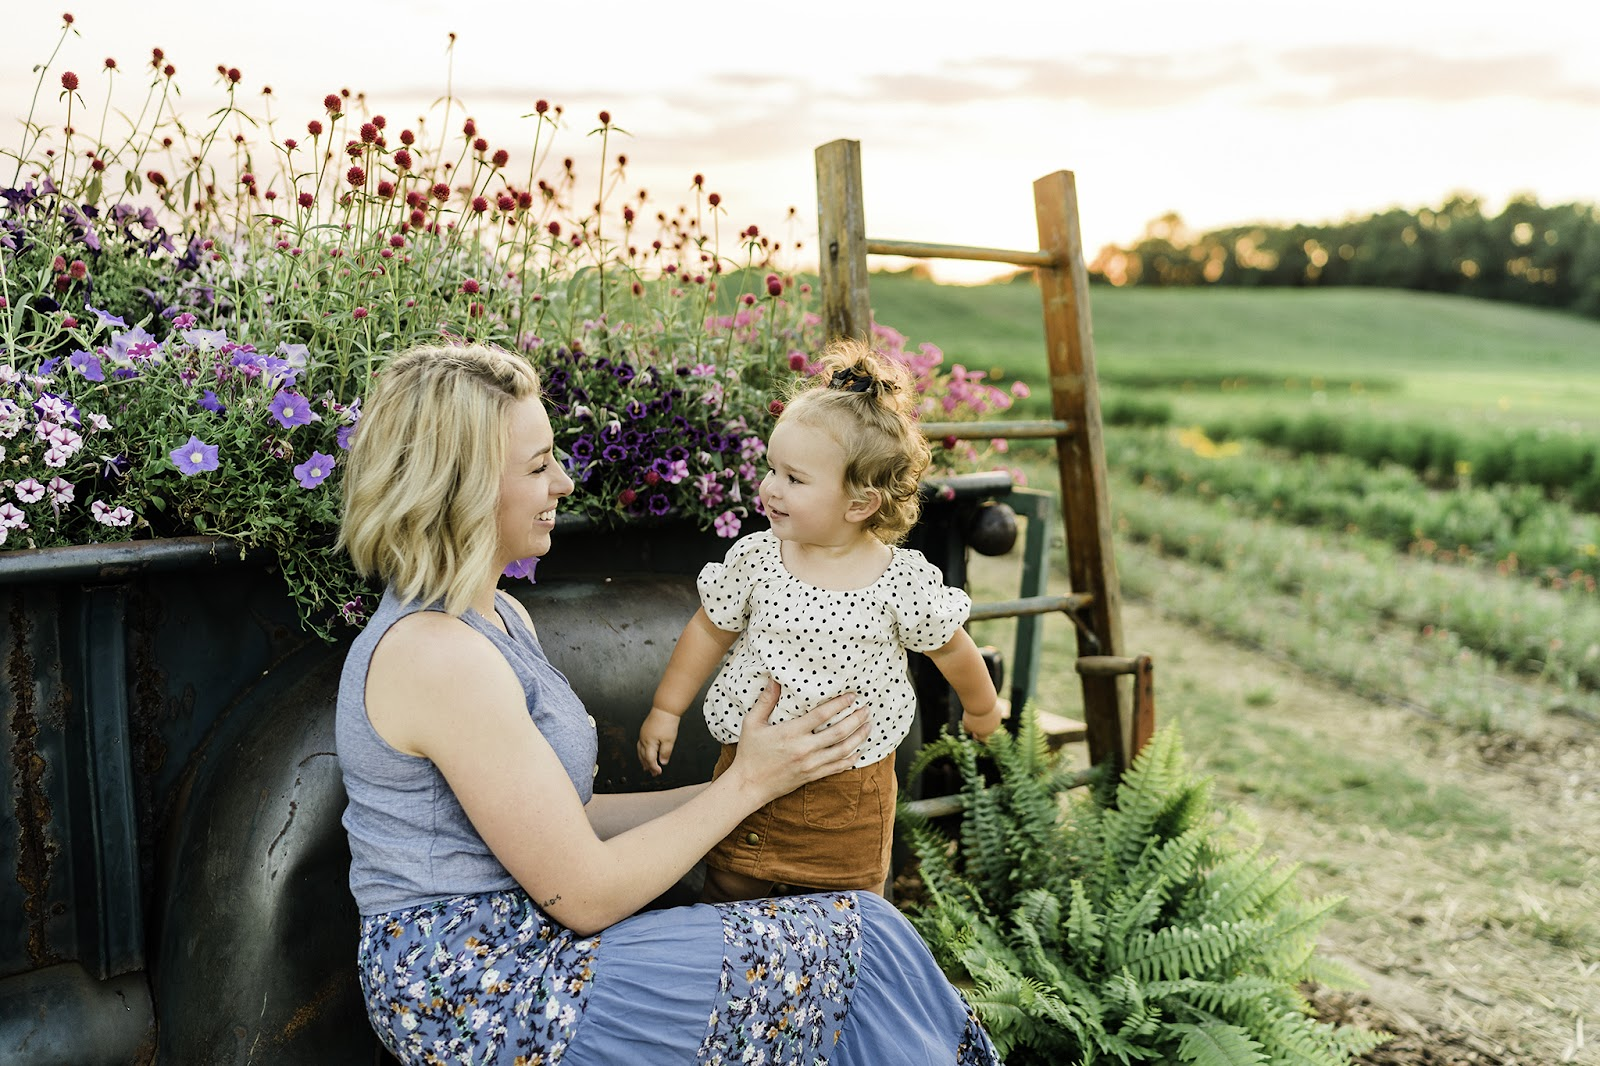 Family Photo Spots at Harvest Tyme Farm Park. Flower photos for the family in Indiana.